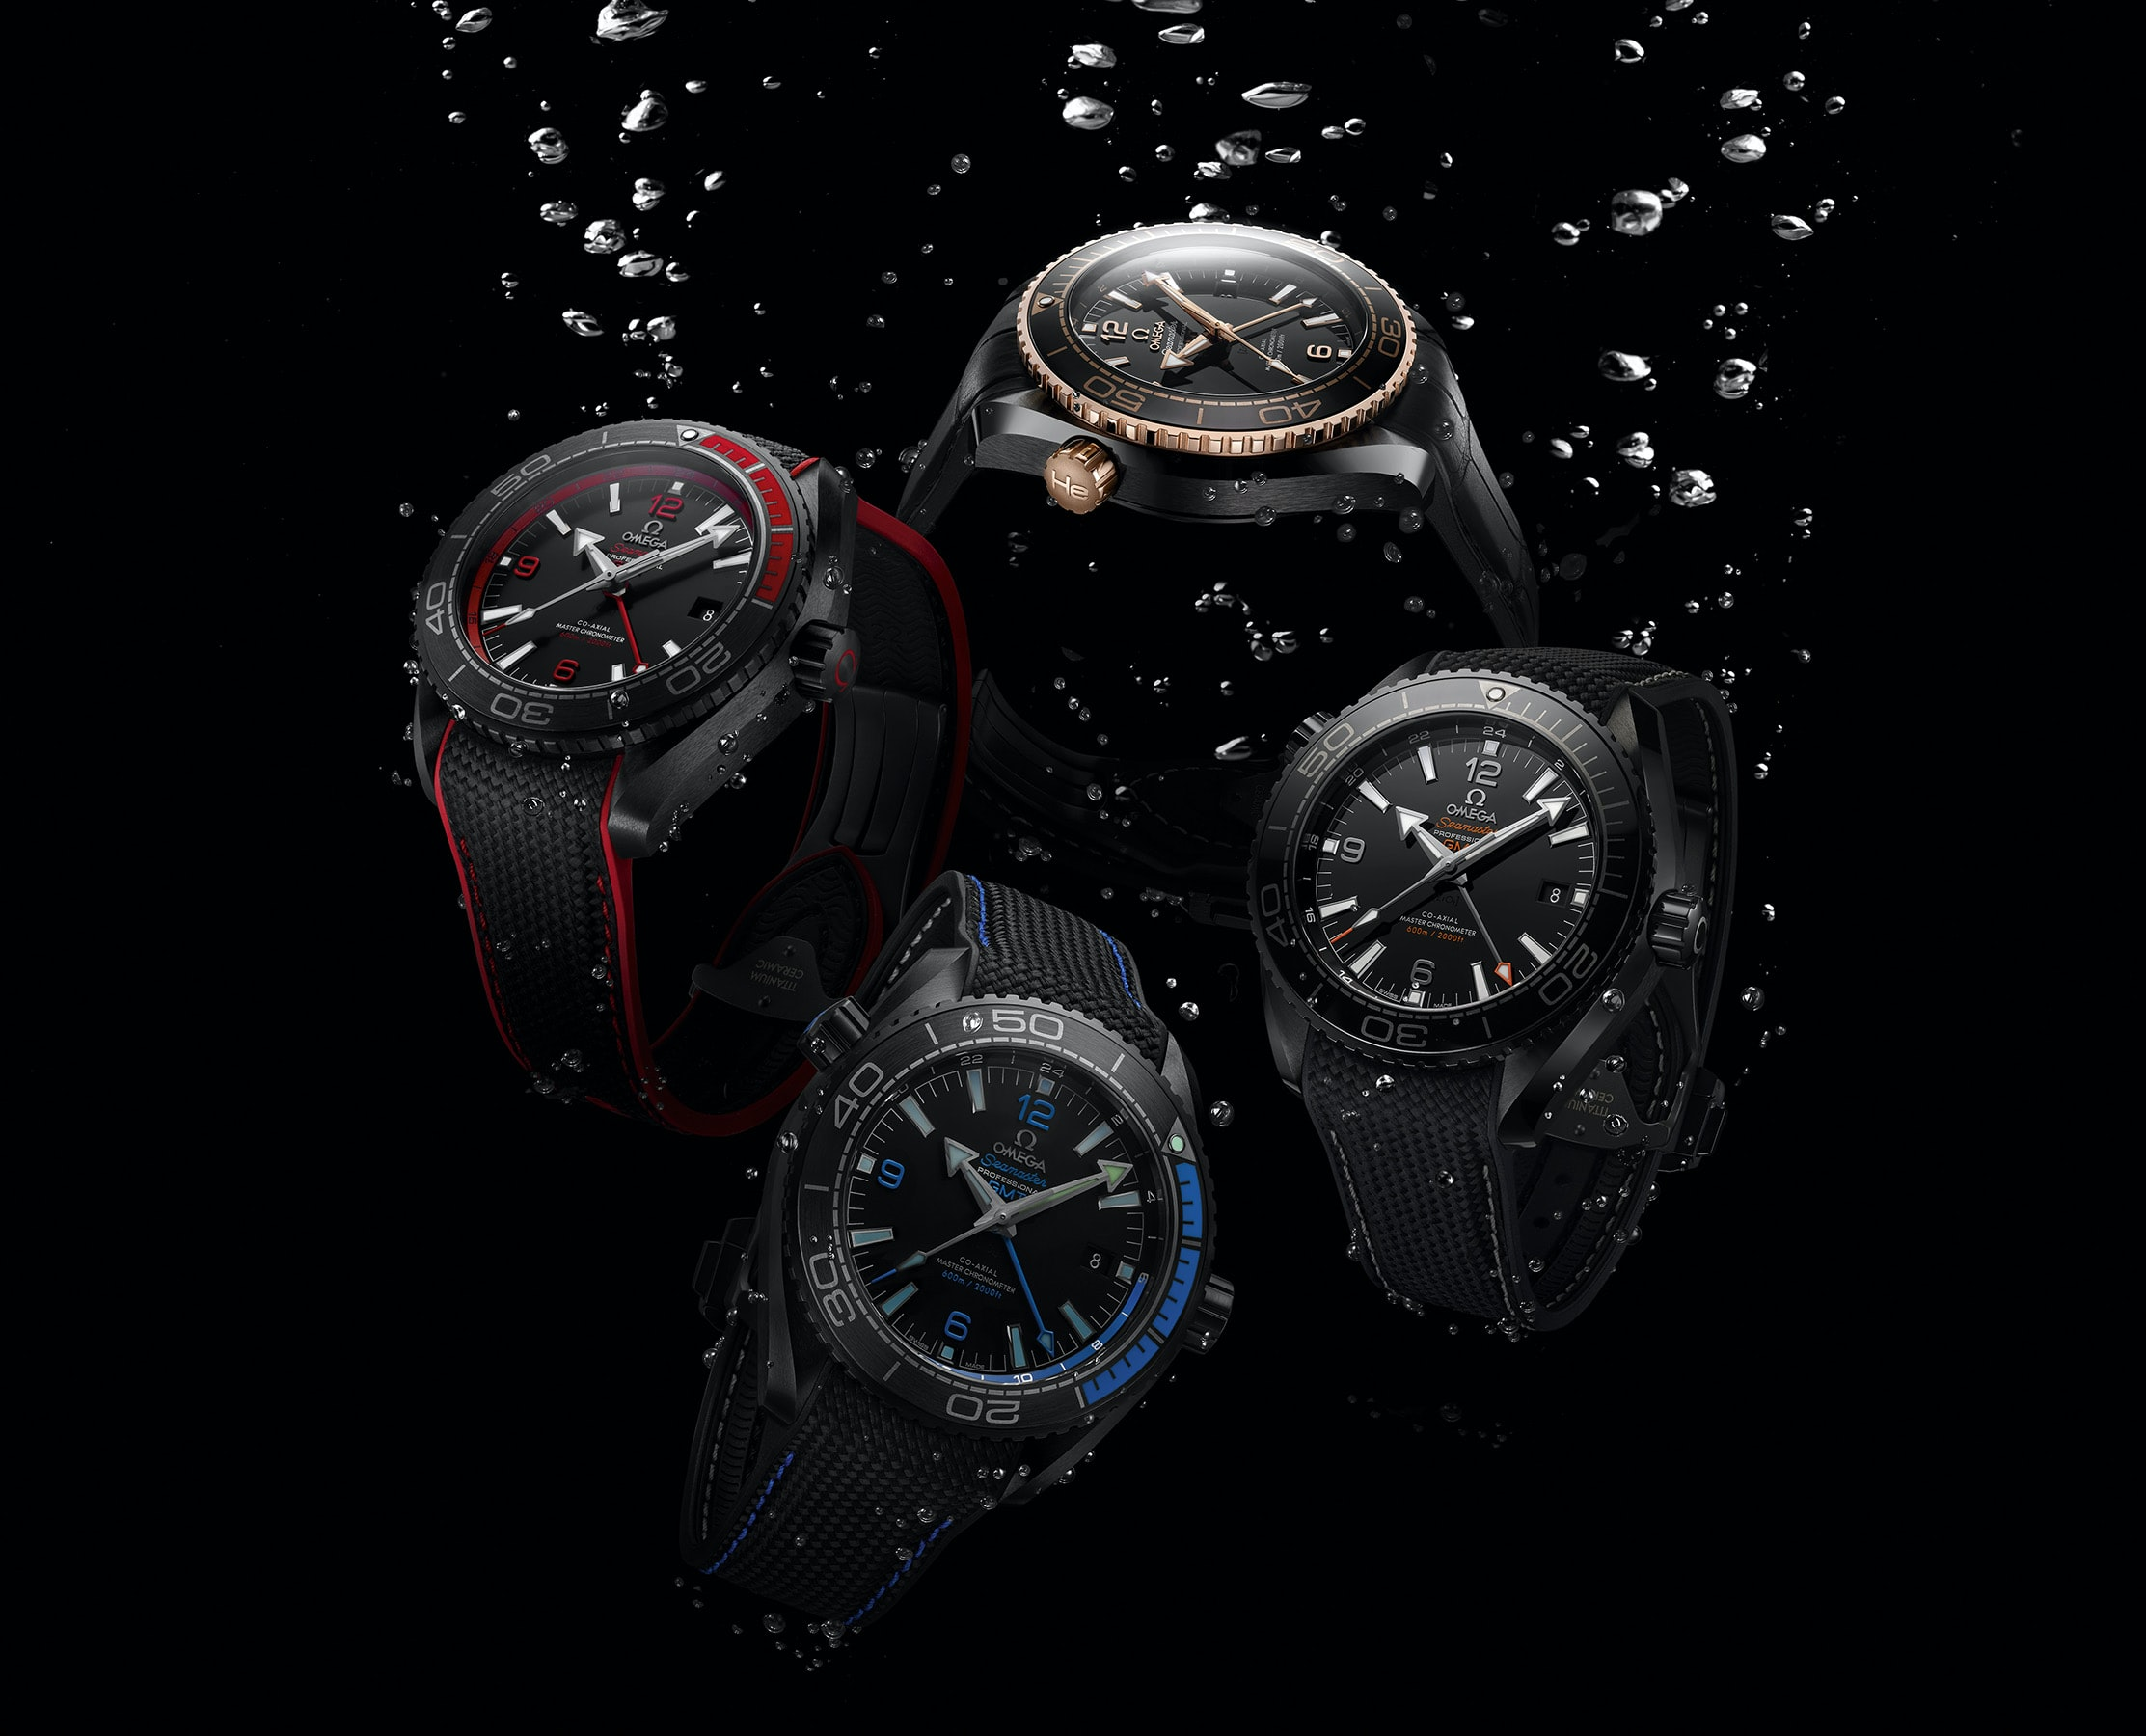 Introducing: The Omega Planet Ocean Deep Black Collection (Full Specs & Official Pricing) Introducing: The Omega Planet Ocean Deep Black Collection (Full Specs & Official Pricing) 33